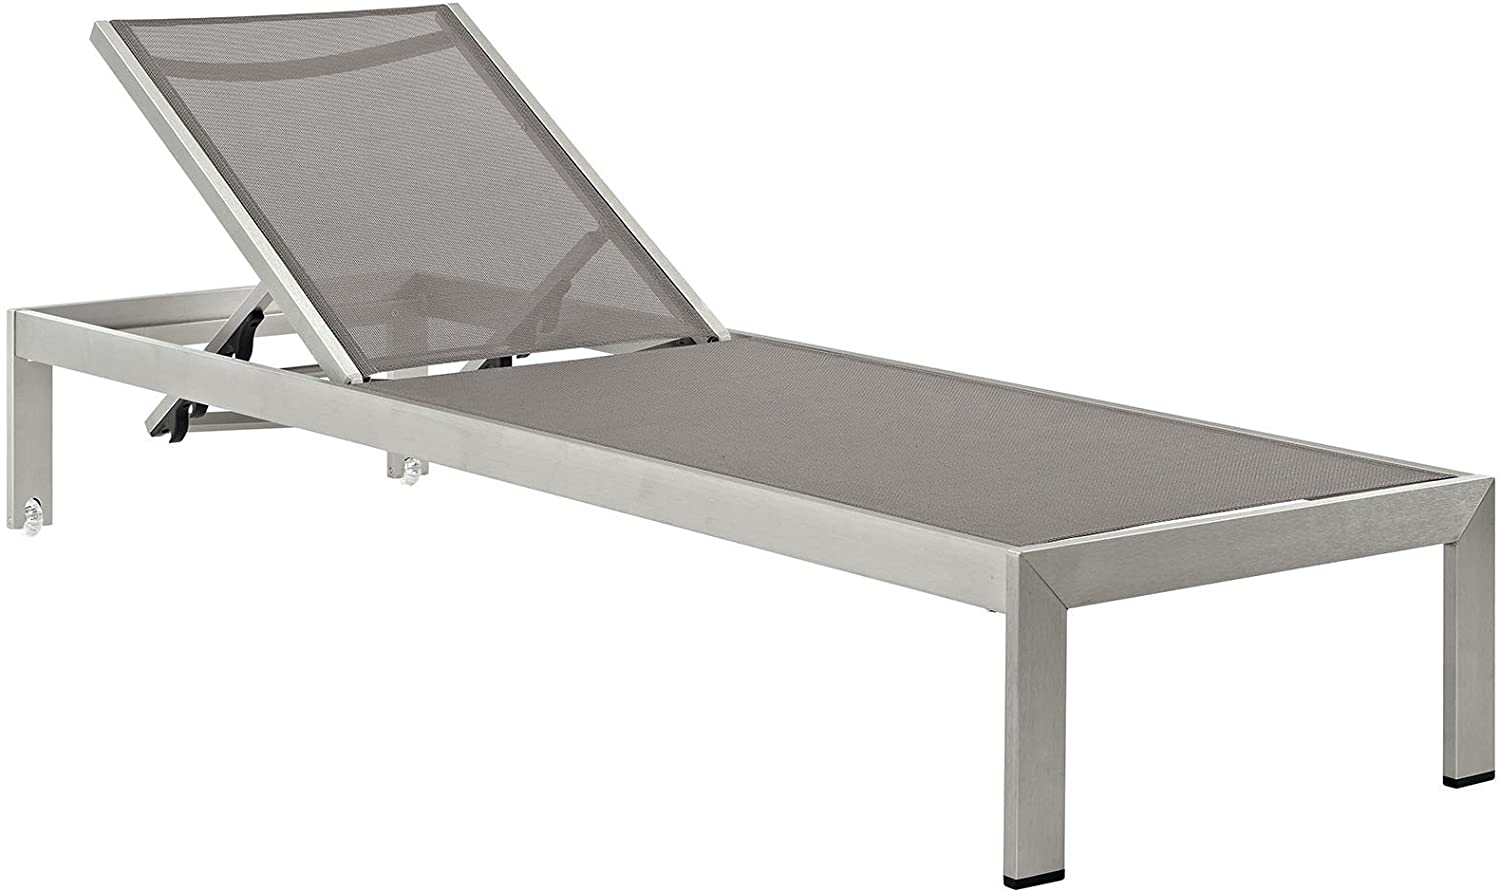 Modway Shore Aluminum Mesh Outdoor Patio Poolside Chaise Lounge Chair in Silver Gray